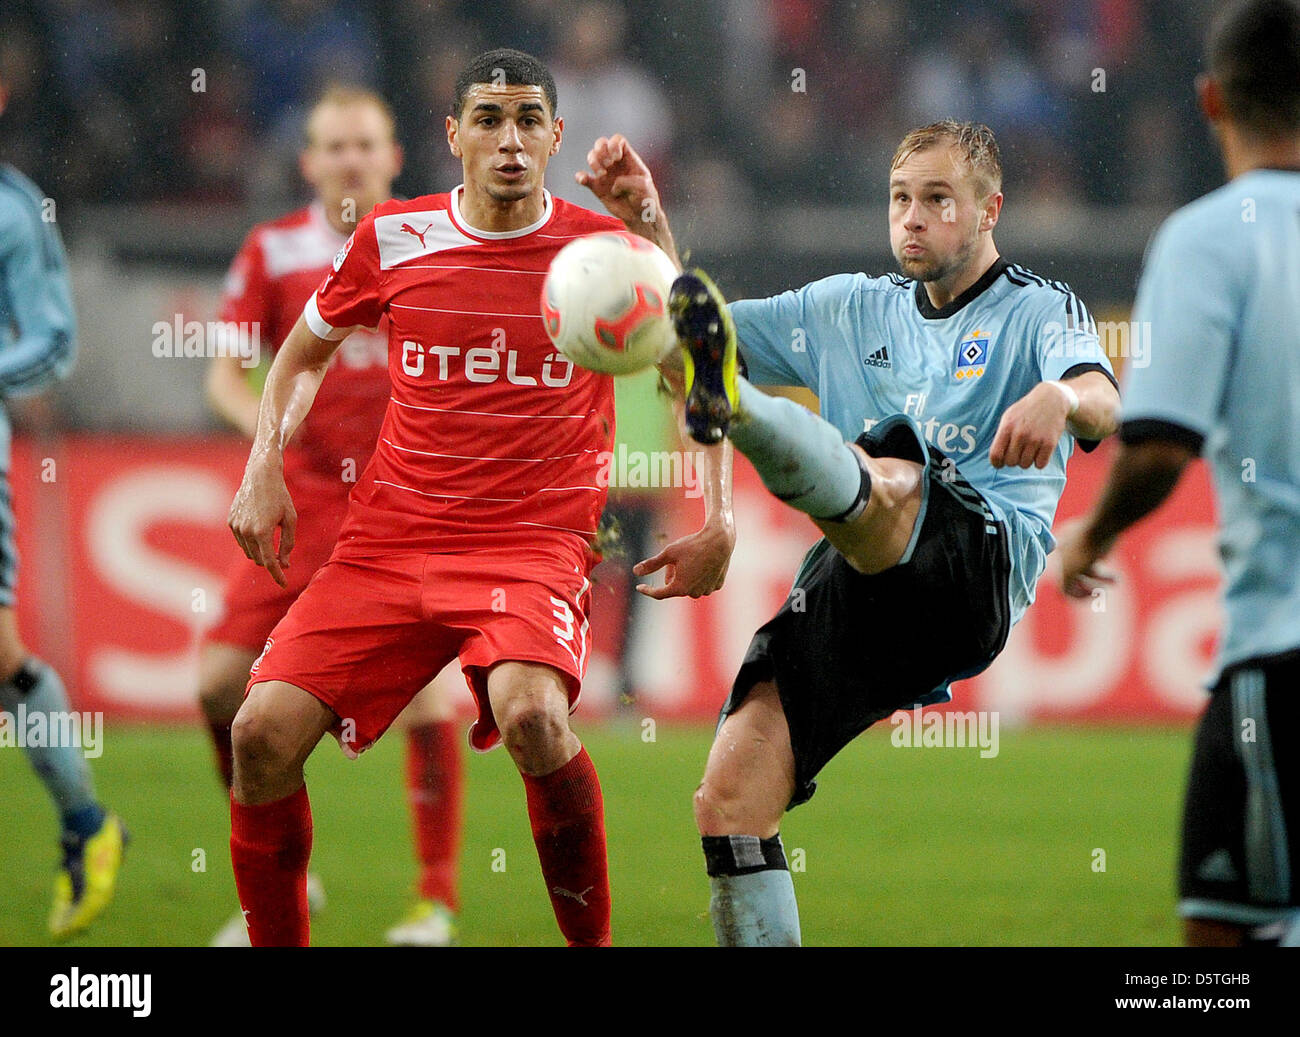 Hamburg's Maximilian Beister (R) vies for the ball with Duesseldorf's Leon Balogun (L)  during the German - Stock Image